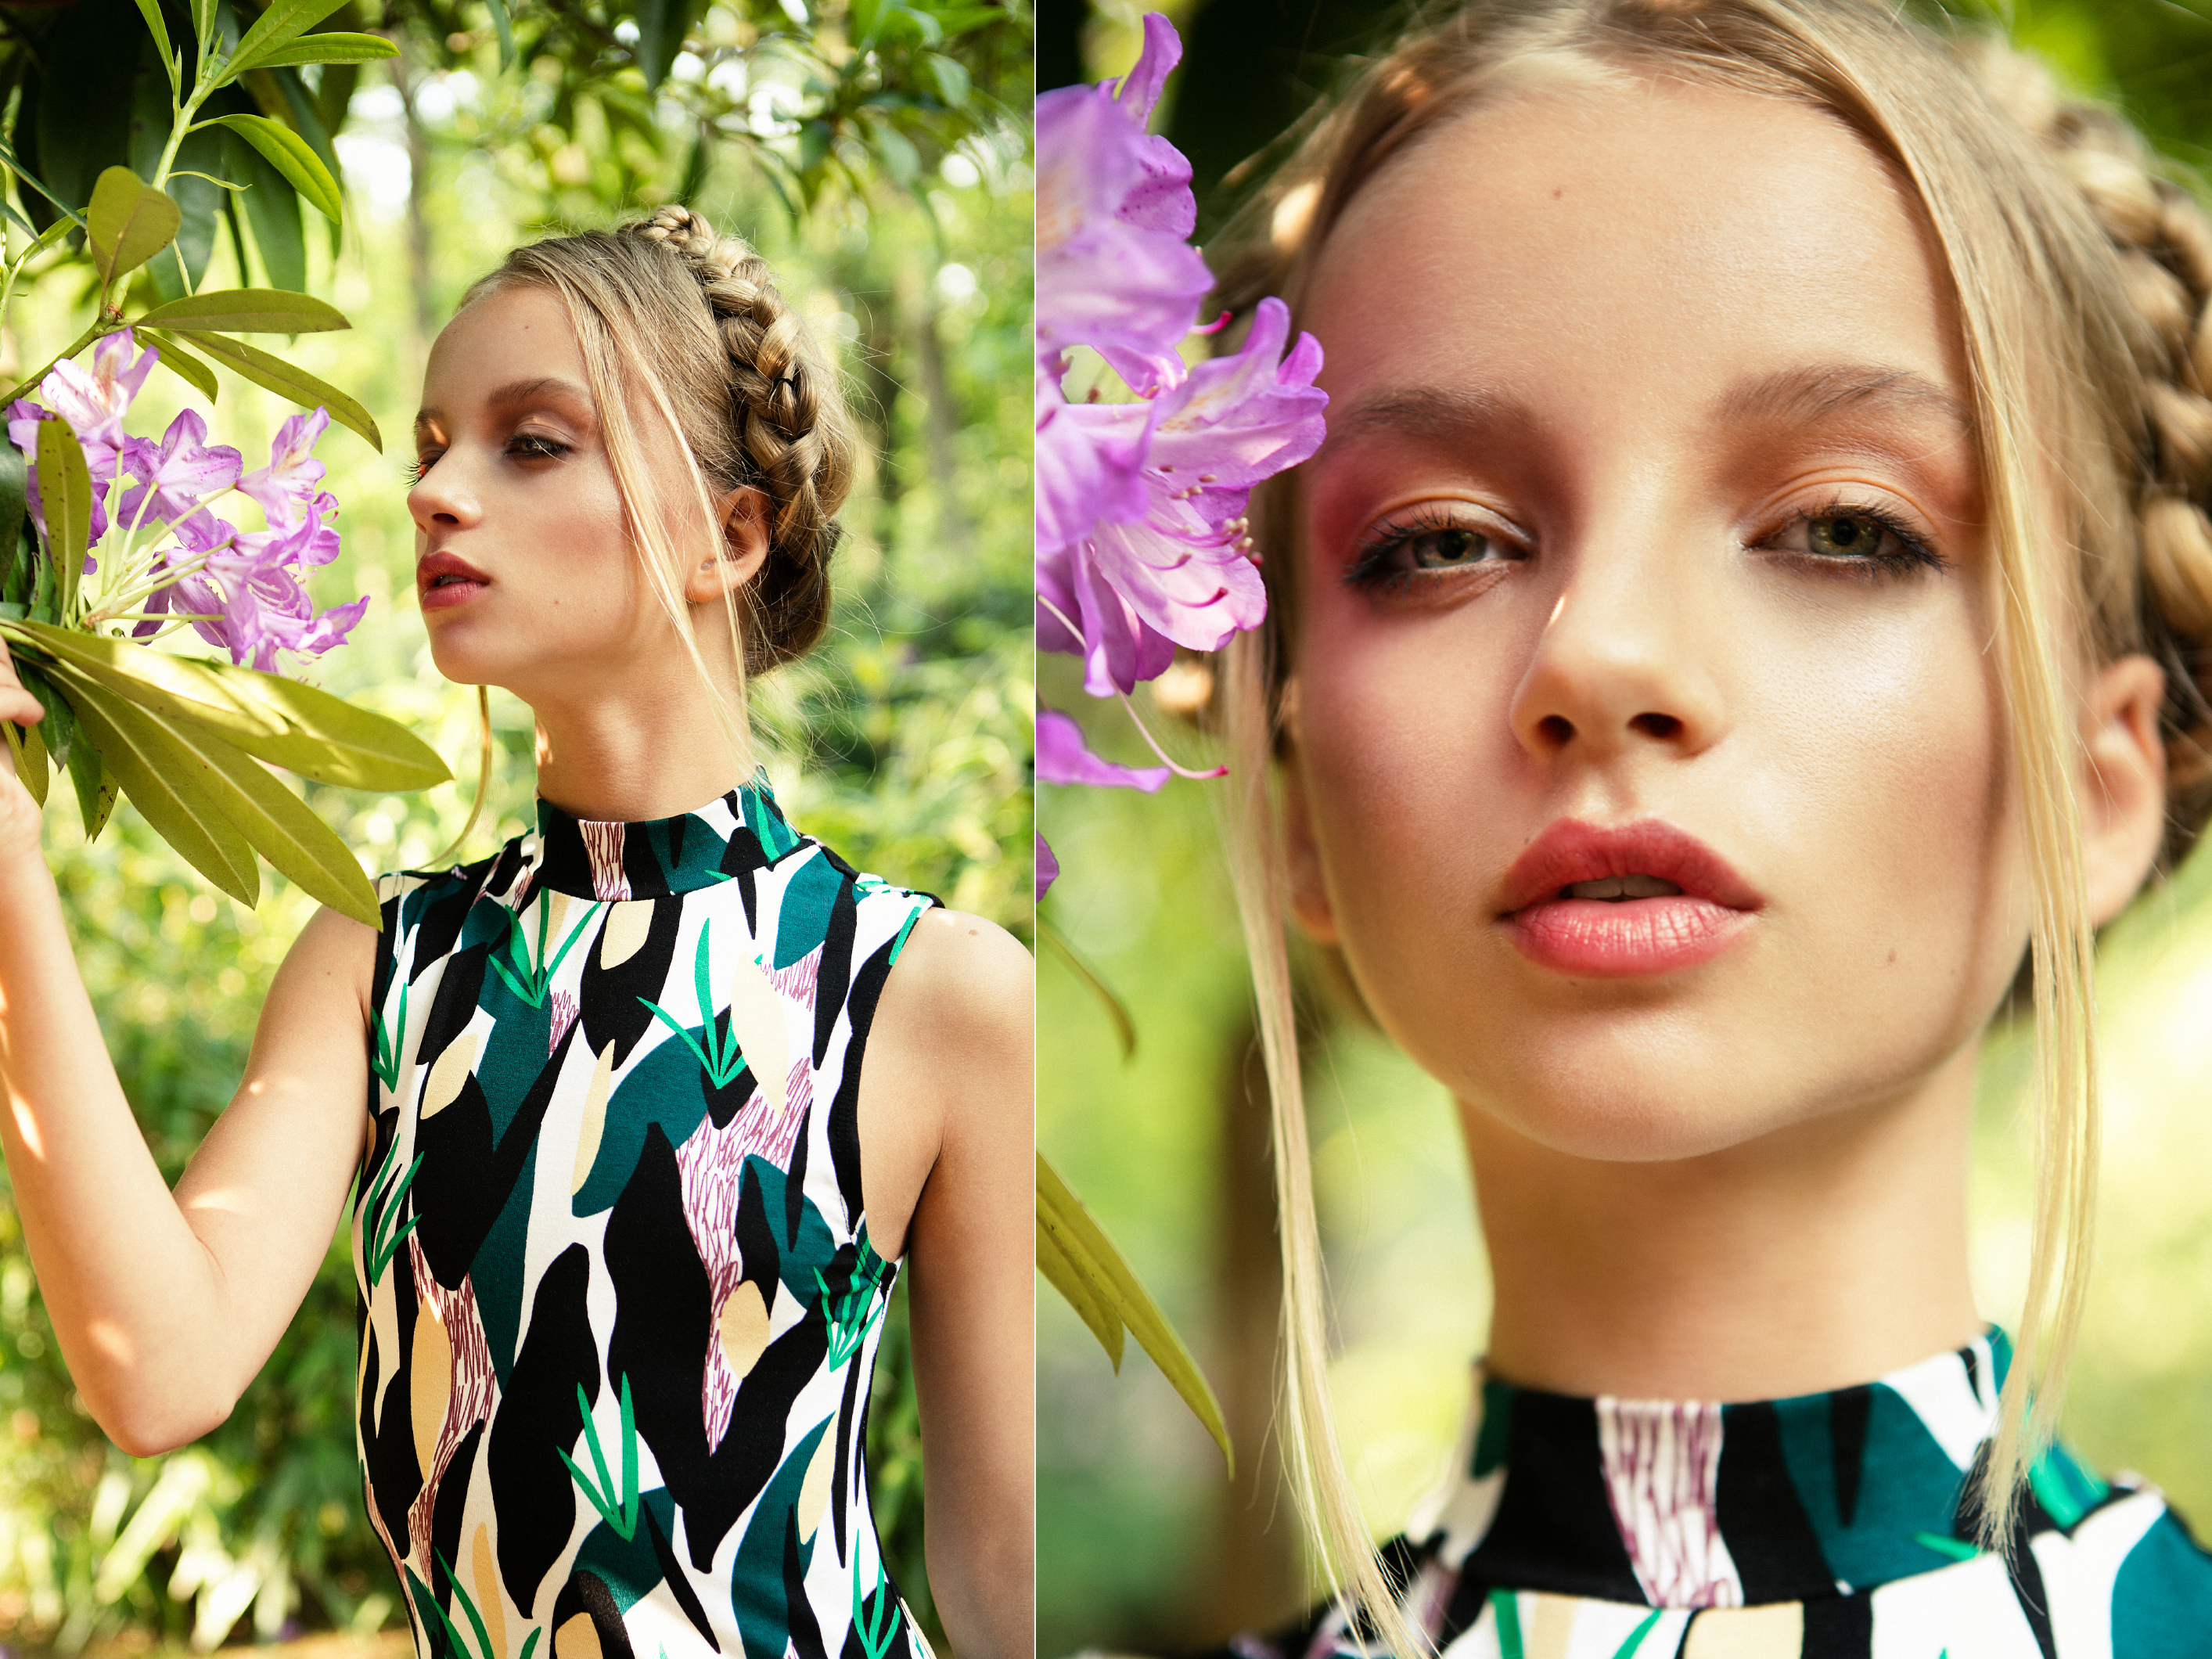 Sunshine_garden_mag_-6 copy